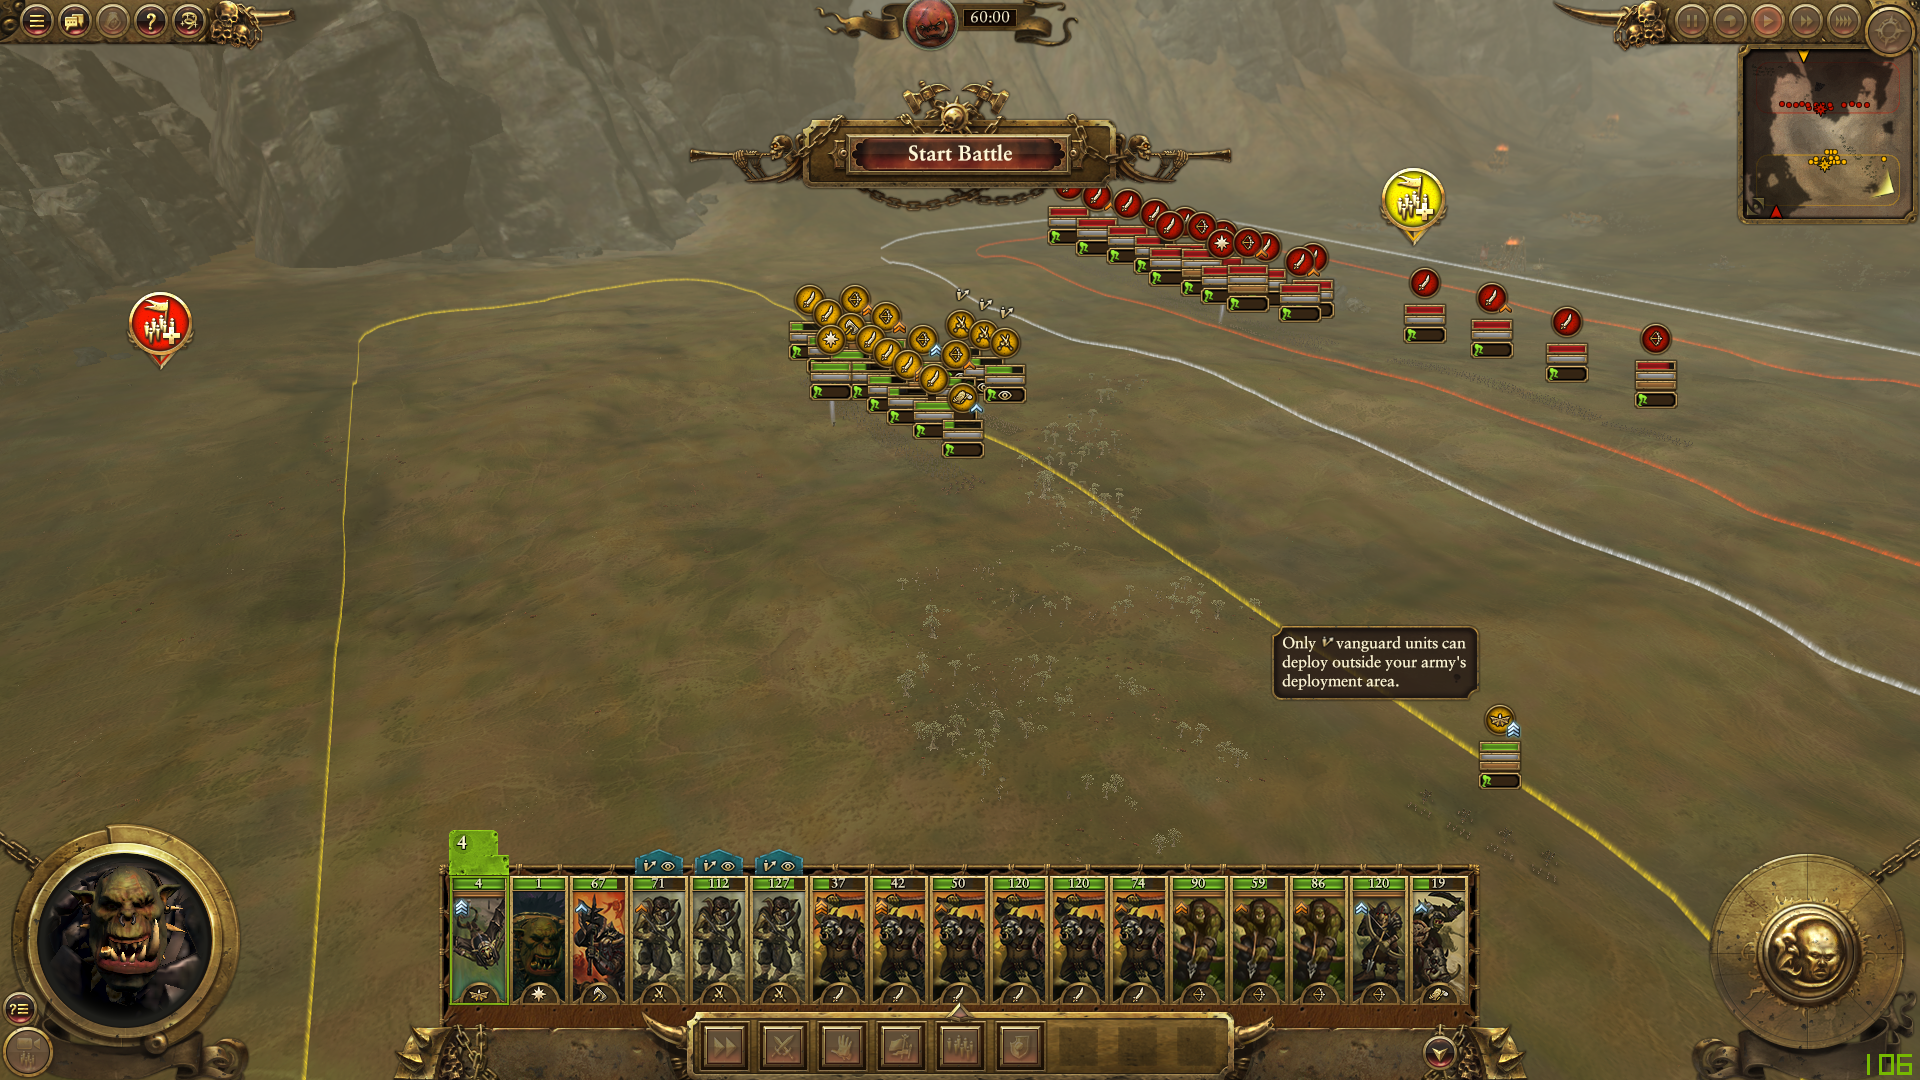 Garrisoned units spawning other side of the map